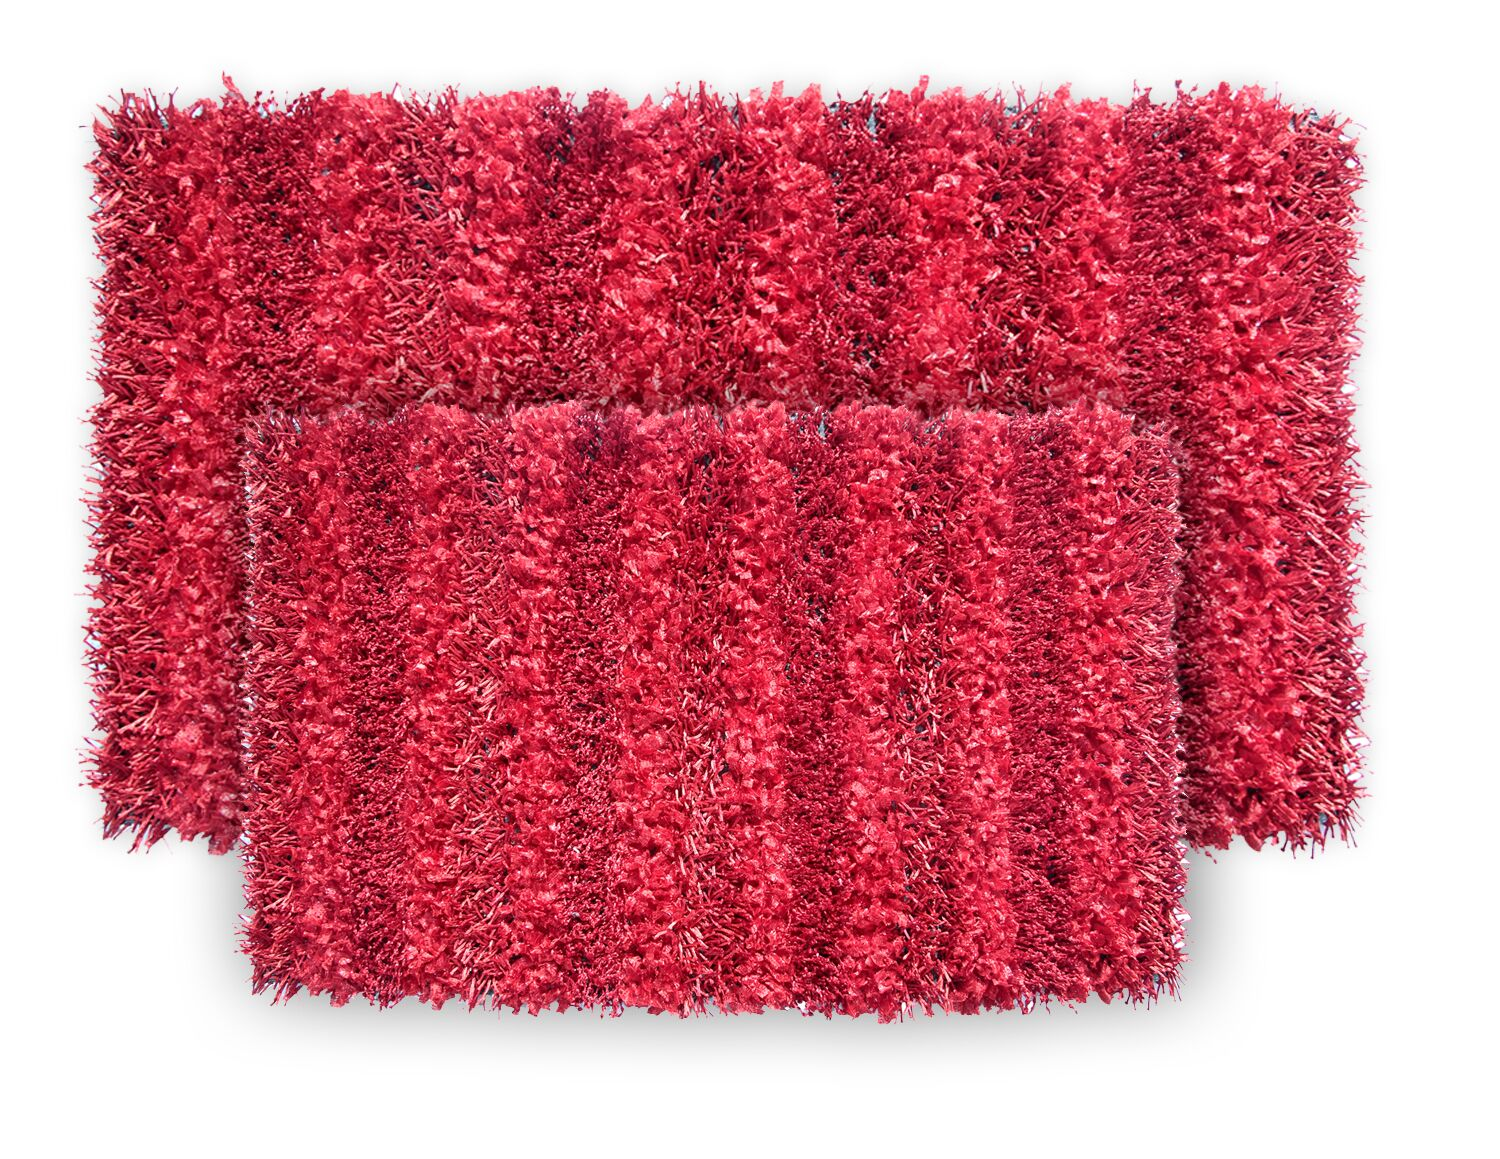 SeaBreeze 2 Piece Hand-Woven Red Novelty Rug Set